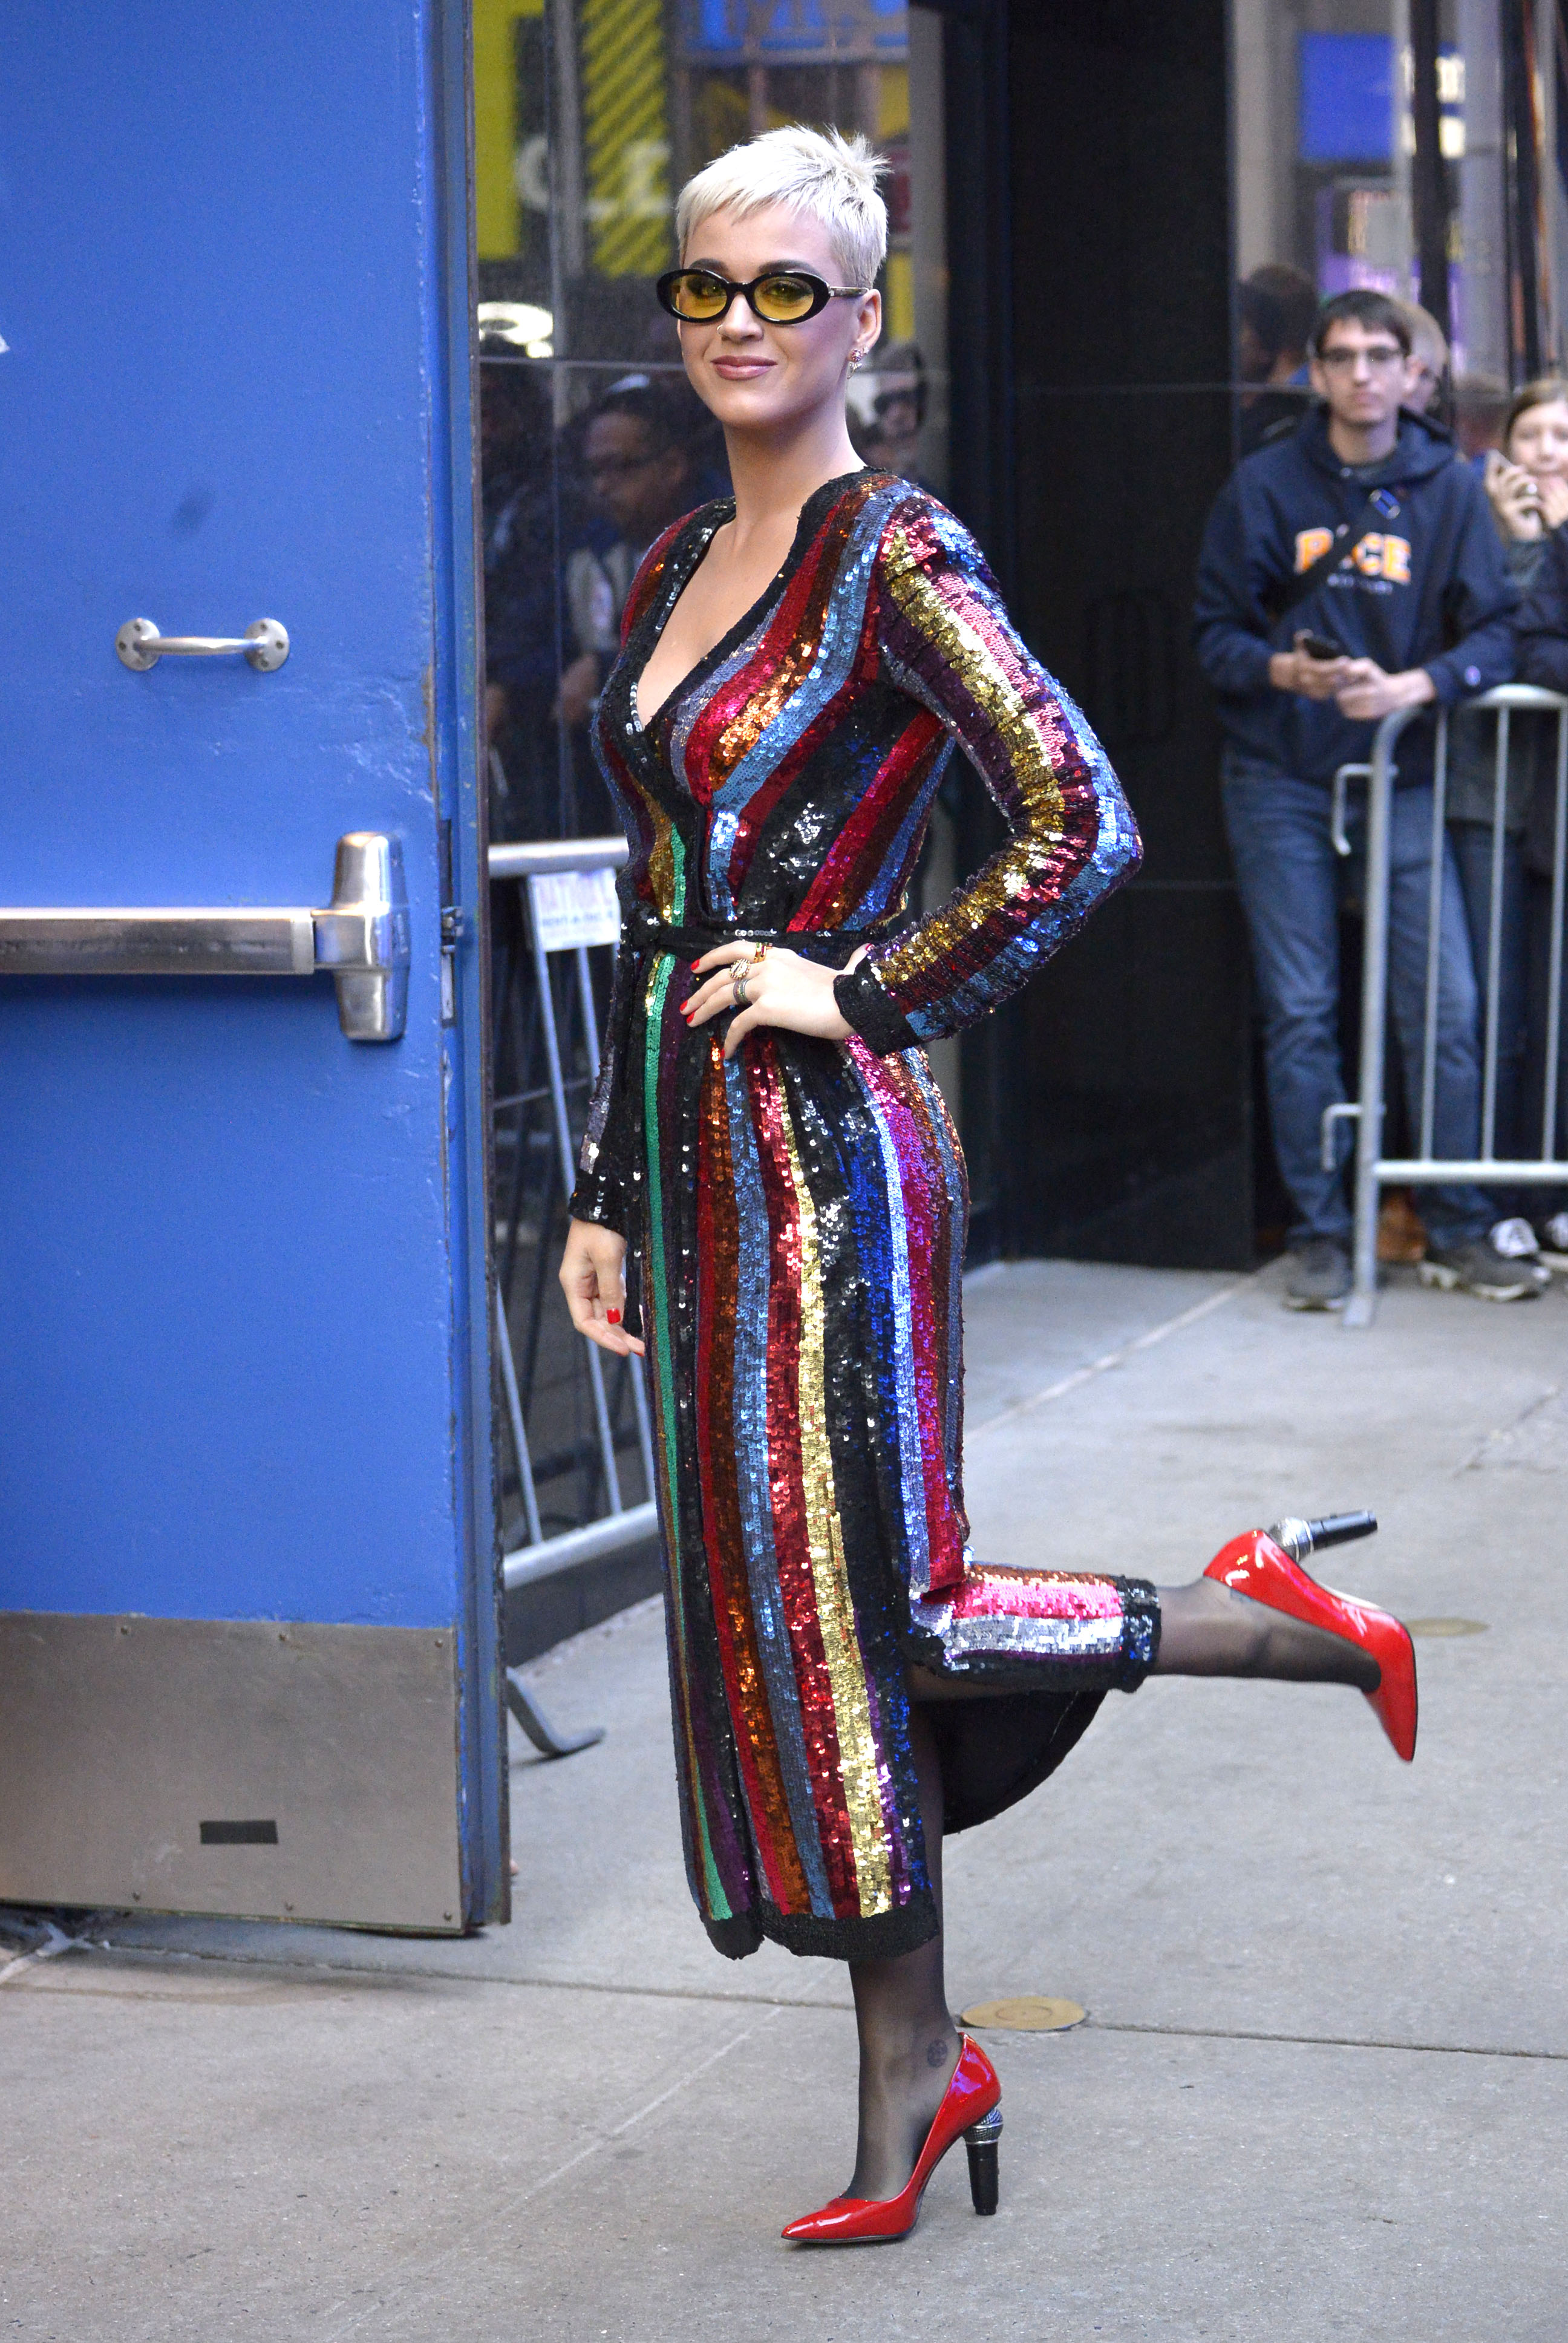 Katy Perry gives a wink and a leg kick while arriving in a colorful metallic dress at 'Good Morning America' to promote 'American Idol' in New York City. <P> Pictured: Katy Perry <B>Ref: SPL1594340  041017  </B><BR/> Picture by: Edward Opi / Splash News<BR/> </P><P> <B>Splash News and Pictures</B><BR/> Los Angeles:310-821-2666<BR/> New York:212-619-2666<BR/> London:870-934-2666<BR/> <span id=